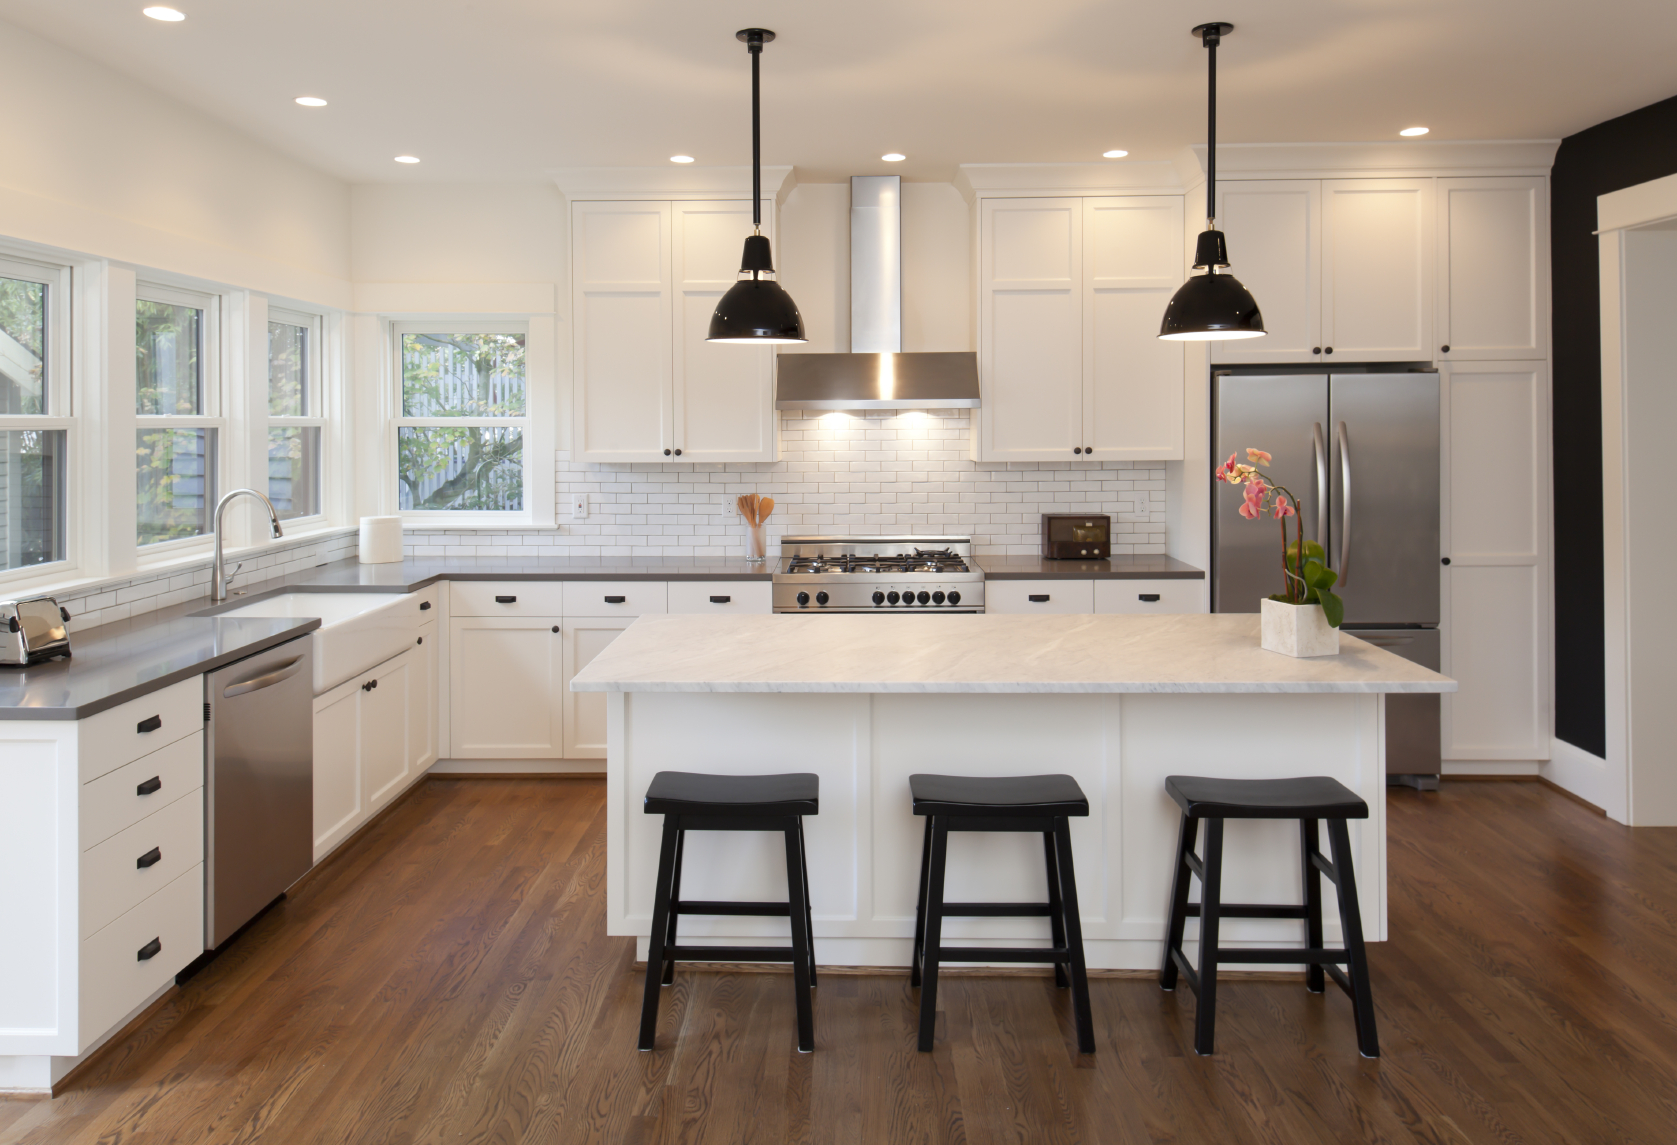 the dos and donts of kitc b remodel kitchen cost 11 04 kitchenremodel